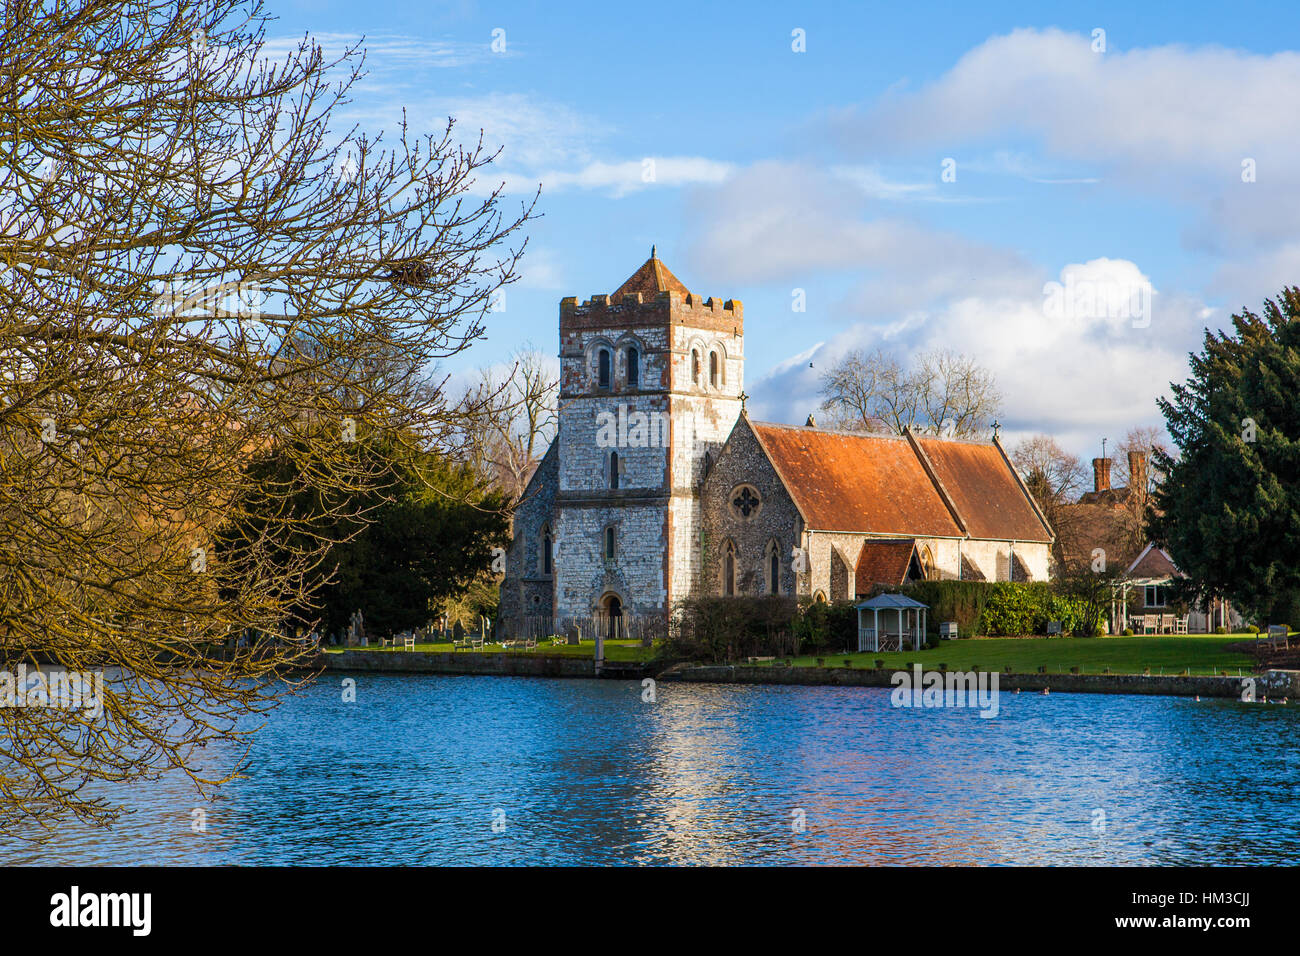 Church on the River Thames - Stock Image